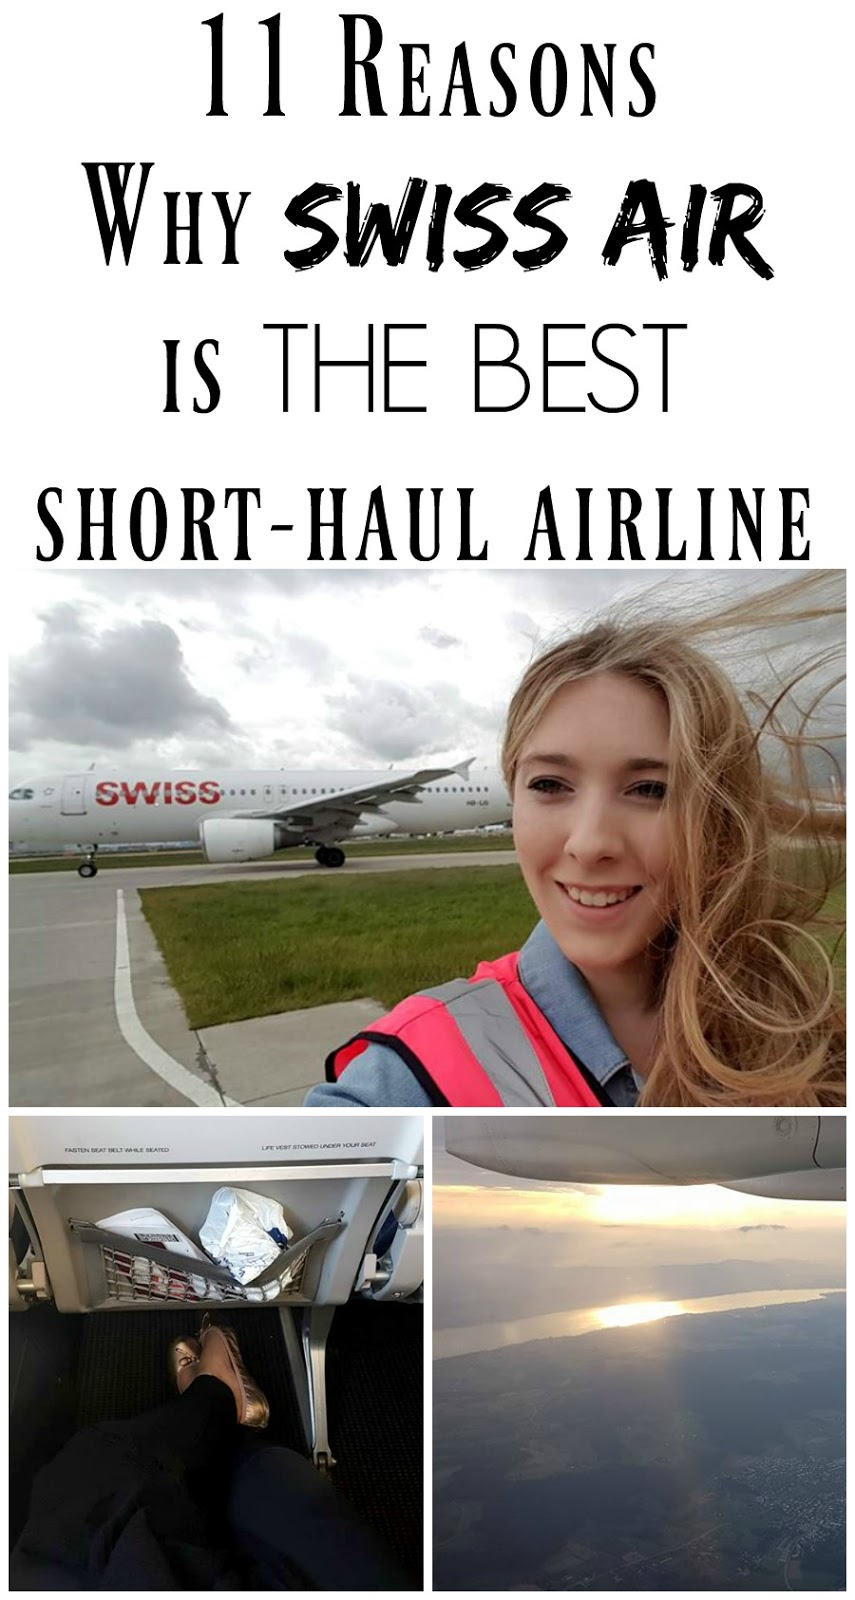 Pin For Later: If you're travelling in Europe, find out why I LOVE Swiss Air and think they're the best short-haul airline EVER!